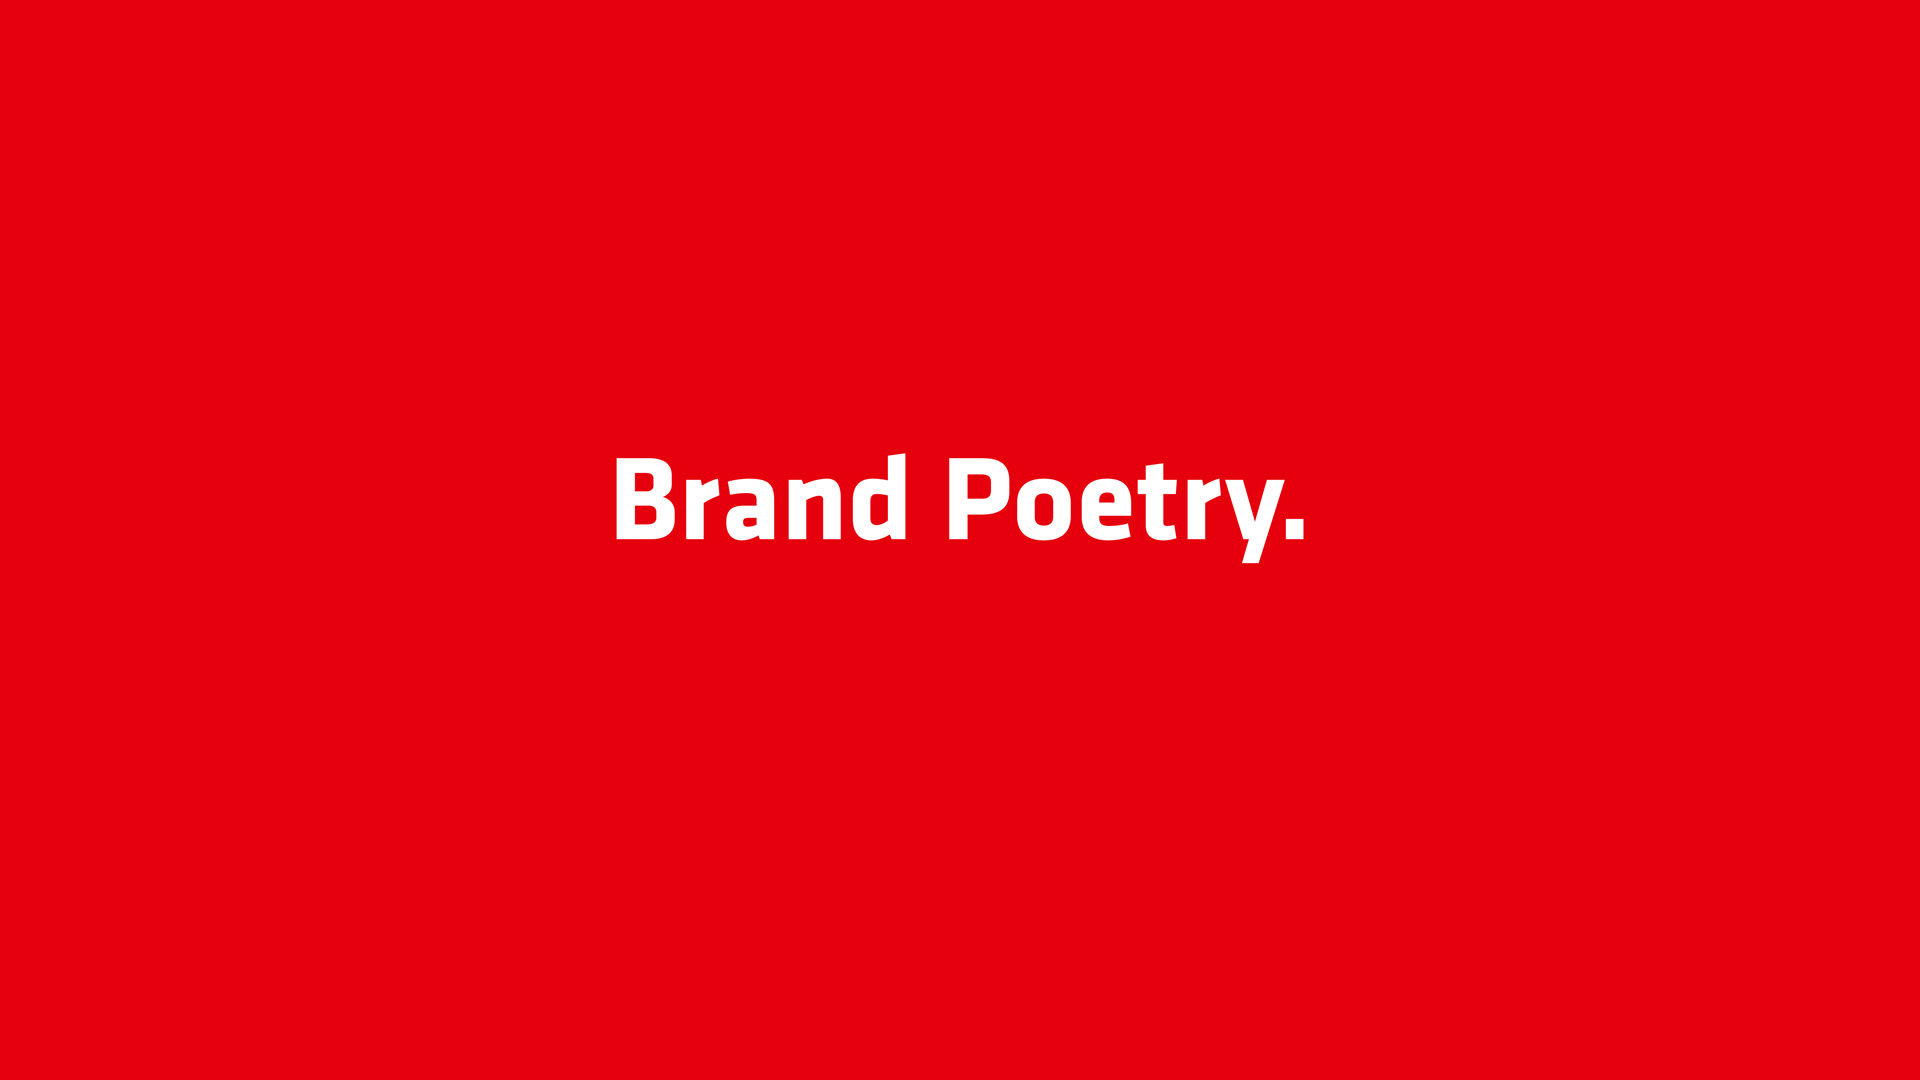 Brand Poetry